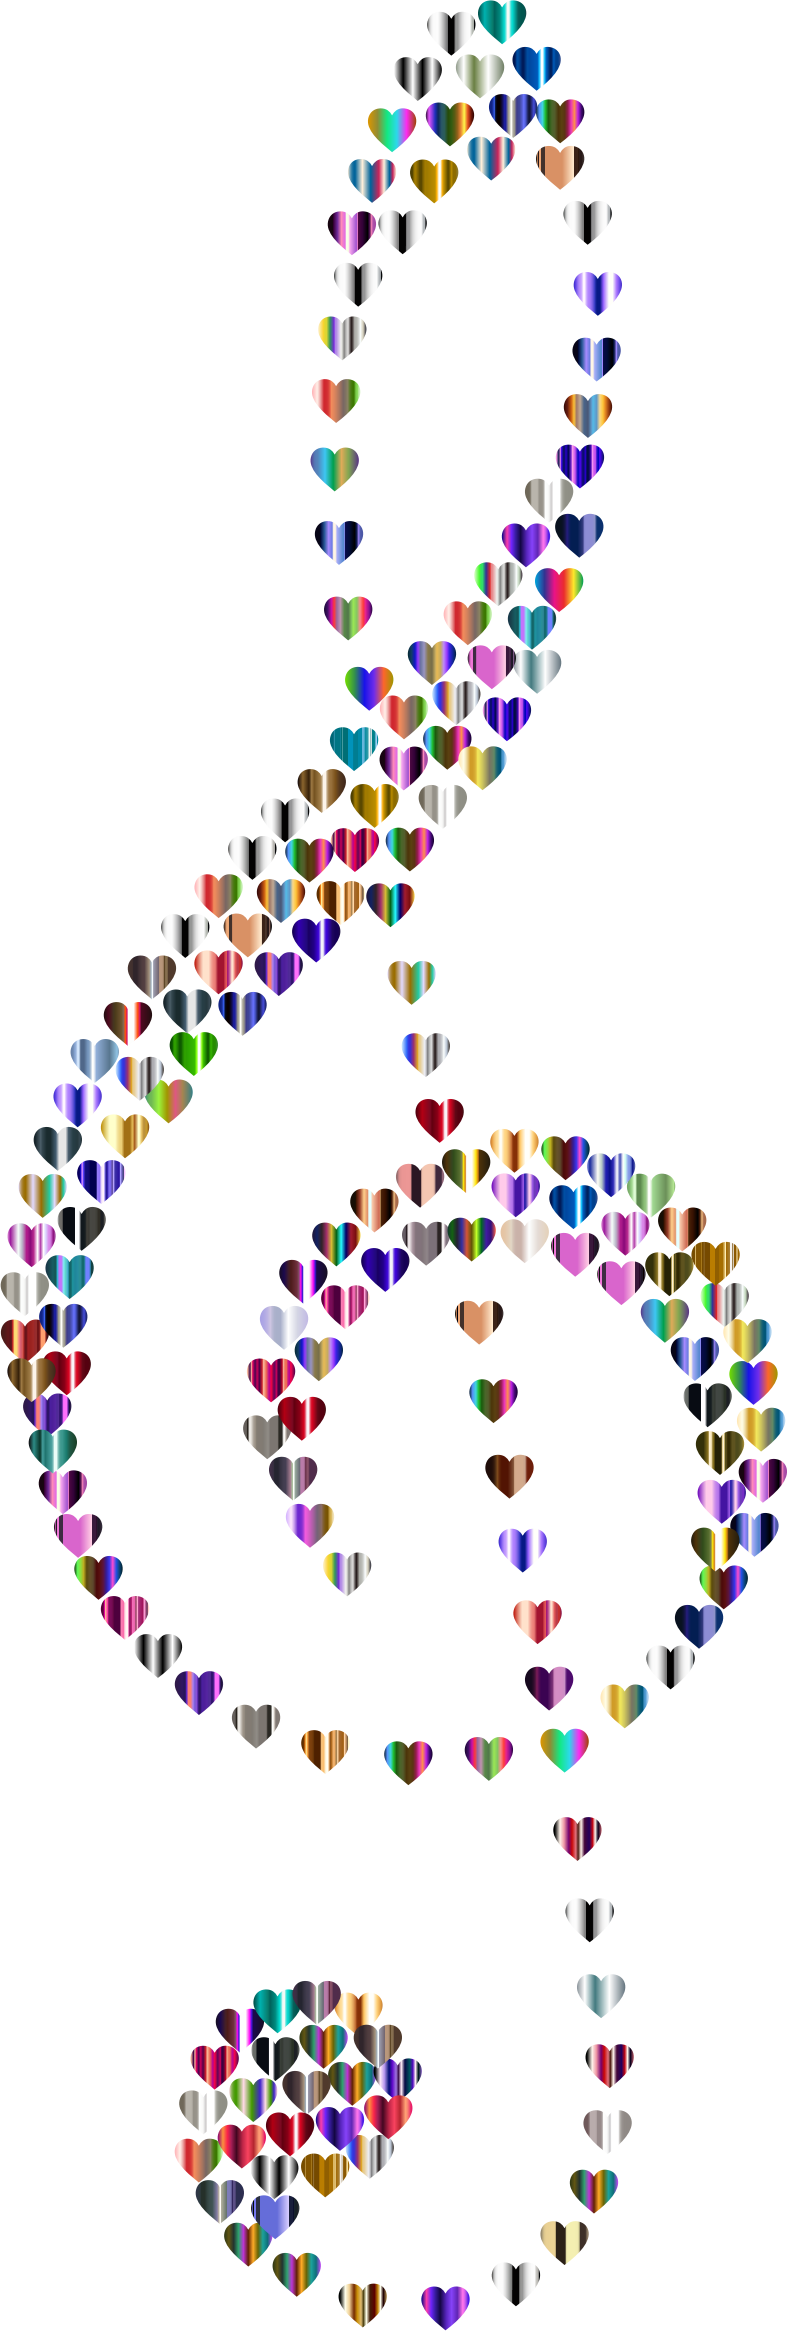 Prismatic Clef Hearts 6 Variation 2 No Background by GDJ